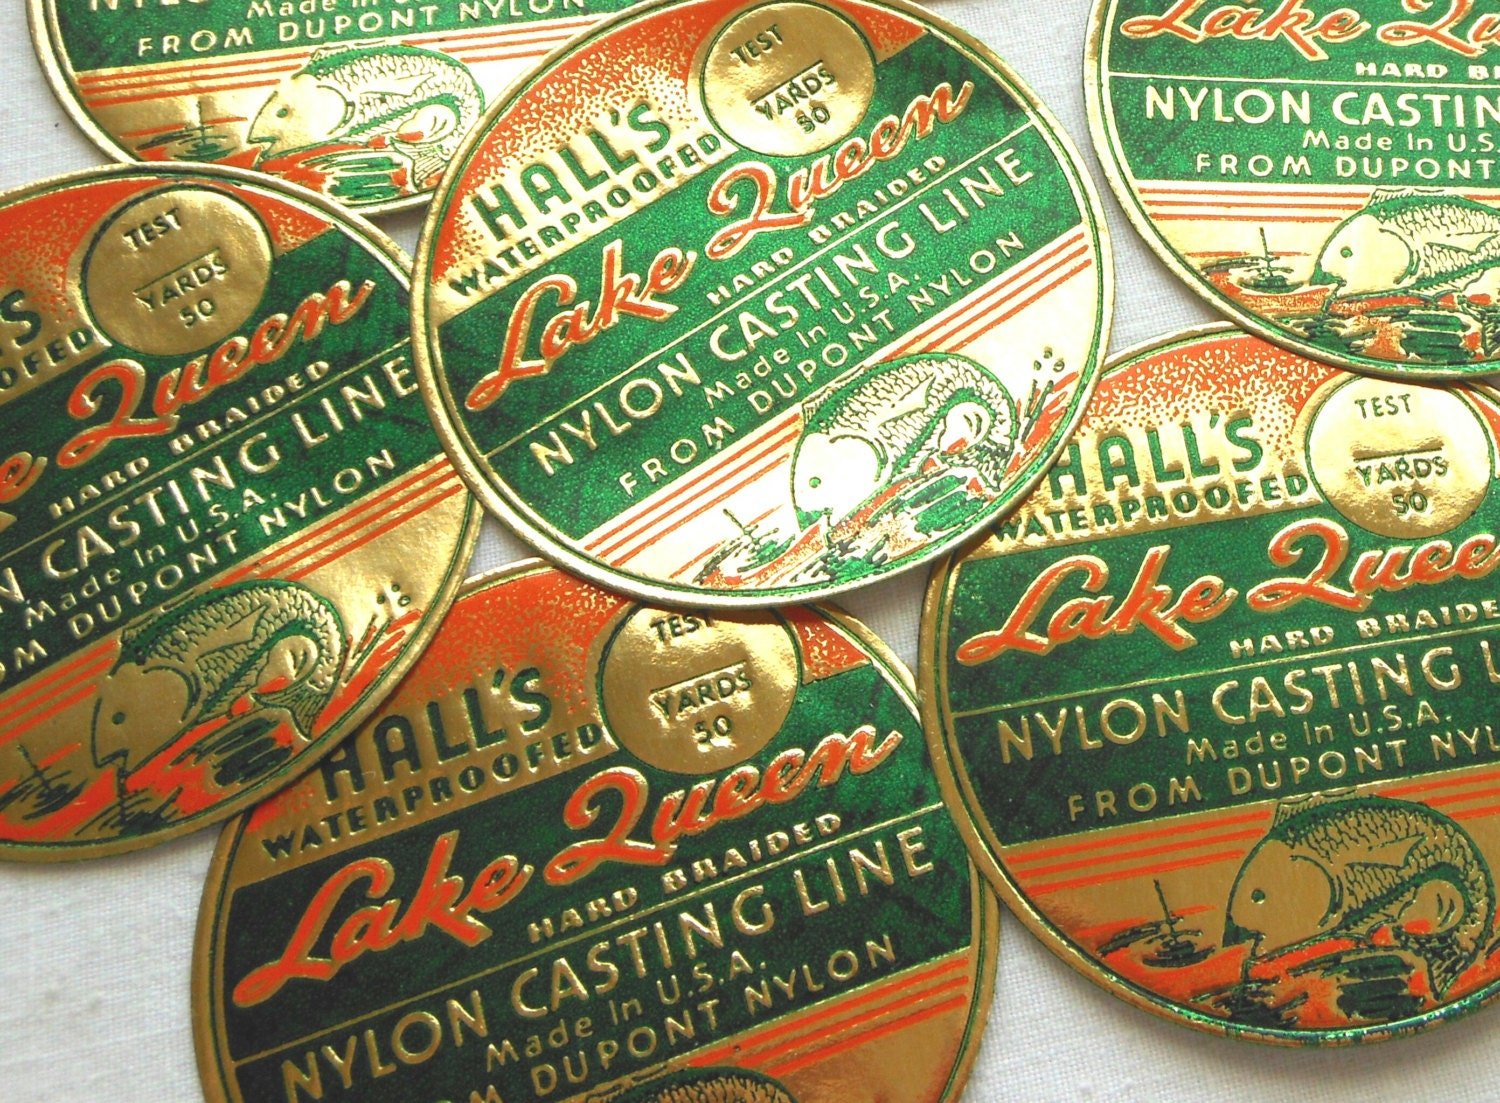 Vintage Fishing Line Labels - Rare 1940s Embossed Orange, Green, and Gold Labels - Hall's Lake Queen Nylon Casting Line Labels - LisasCraftShoppe